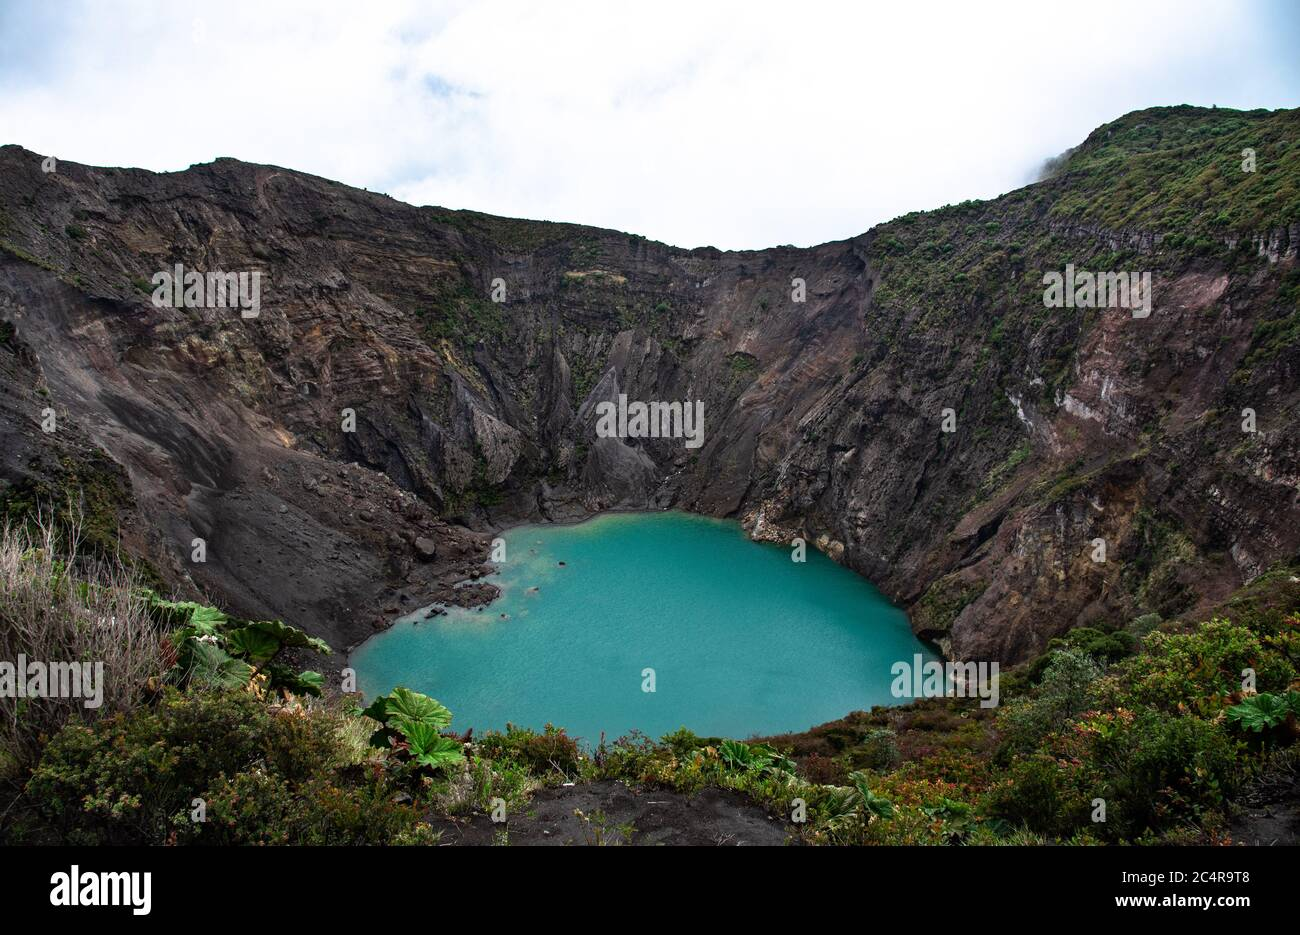 Volcano Irazu, colorful mineral lagoon, crater lake, Costa Rica National Park, cartago province, Central America, 3432 meters high Stock Photo